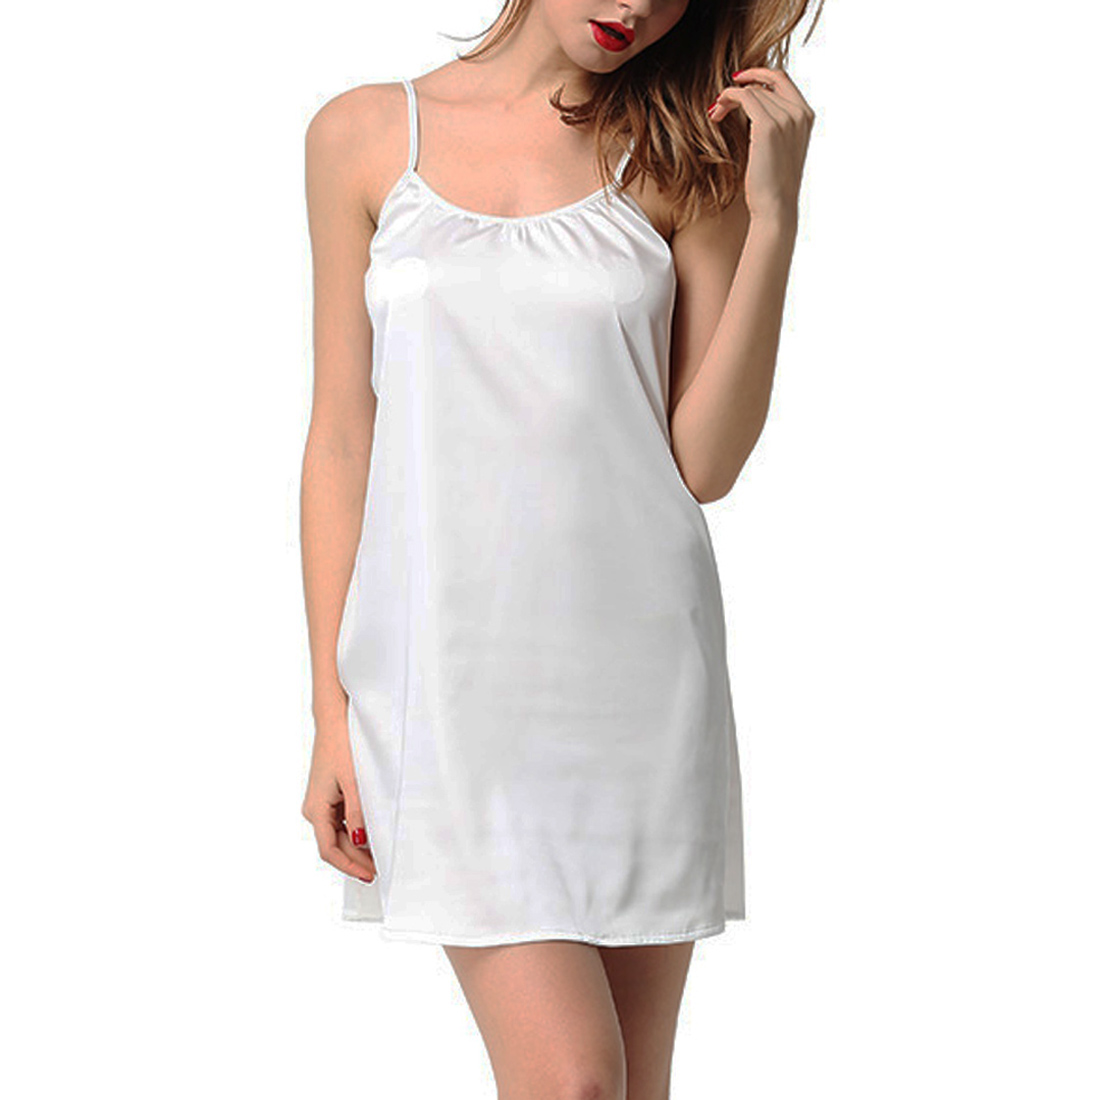 Womens Satin Slip Babydoll Chemise Cami Camisole Nightgown